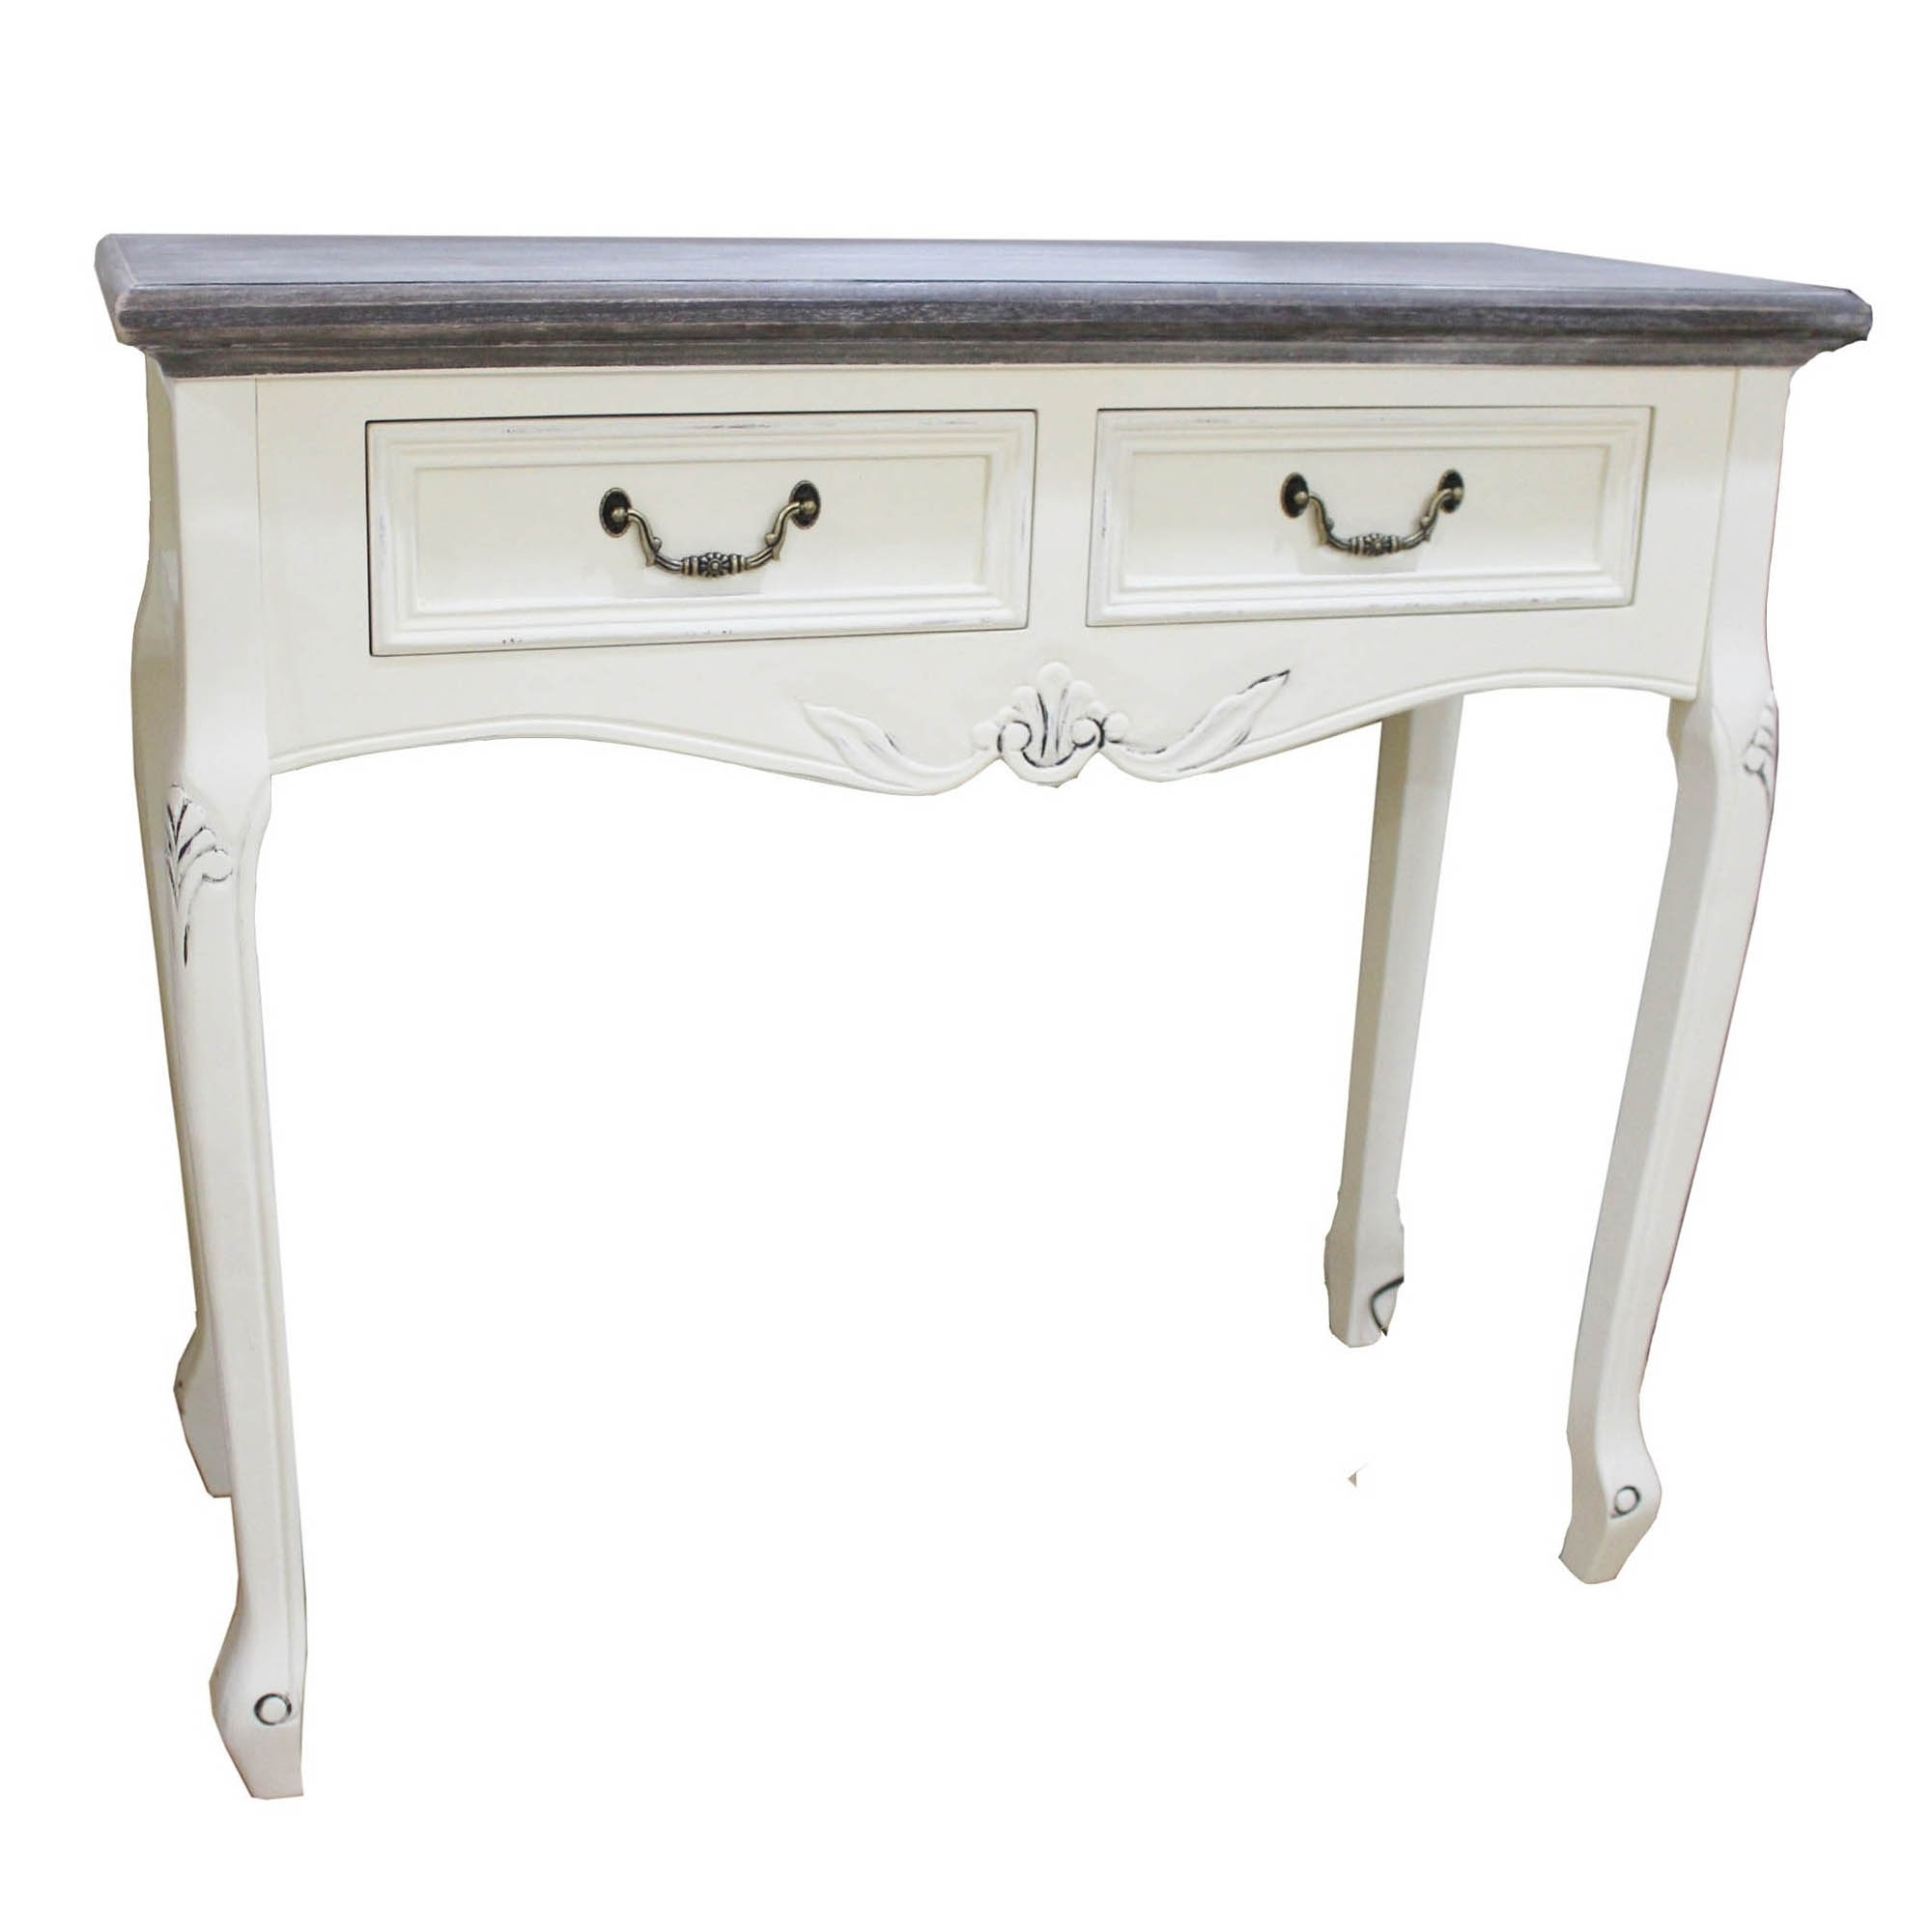 heritage shabby chic console table console table homesdirect365 rh homesdirect365 co uk shabby chic console tables mushroom grey shabby chic console table painters